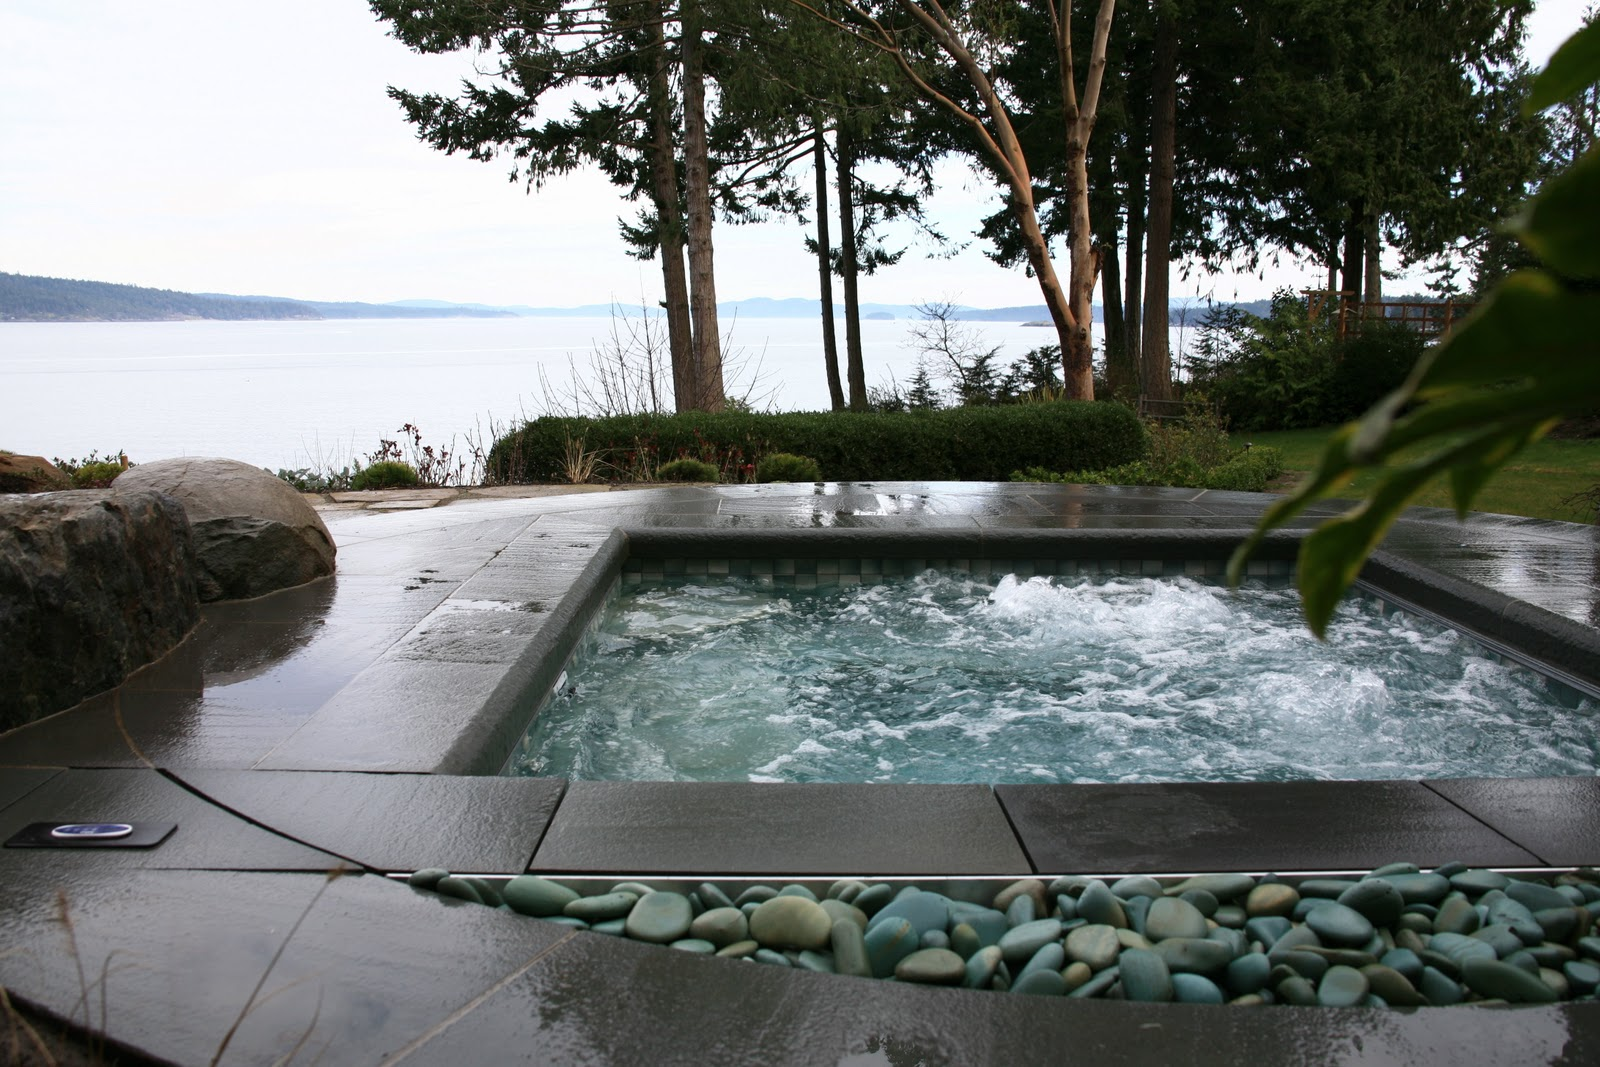 Lands end custom hot tub jonathan craggs landscape design for Hot tub landscape design